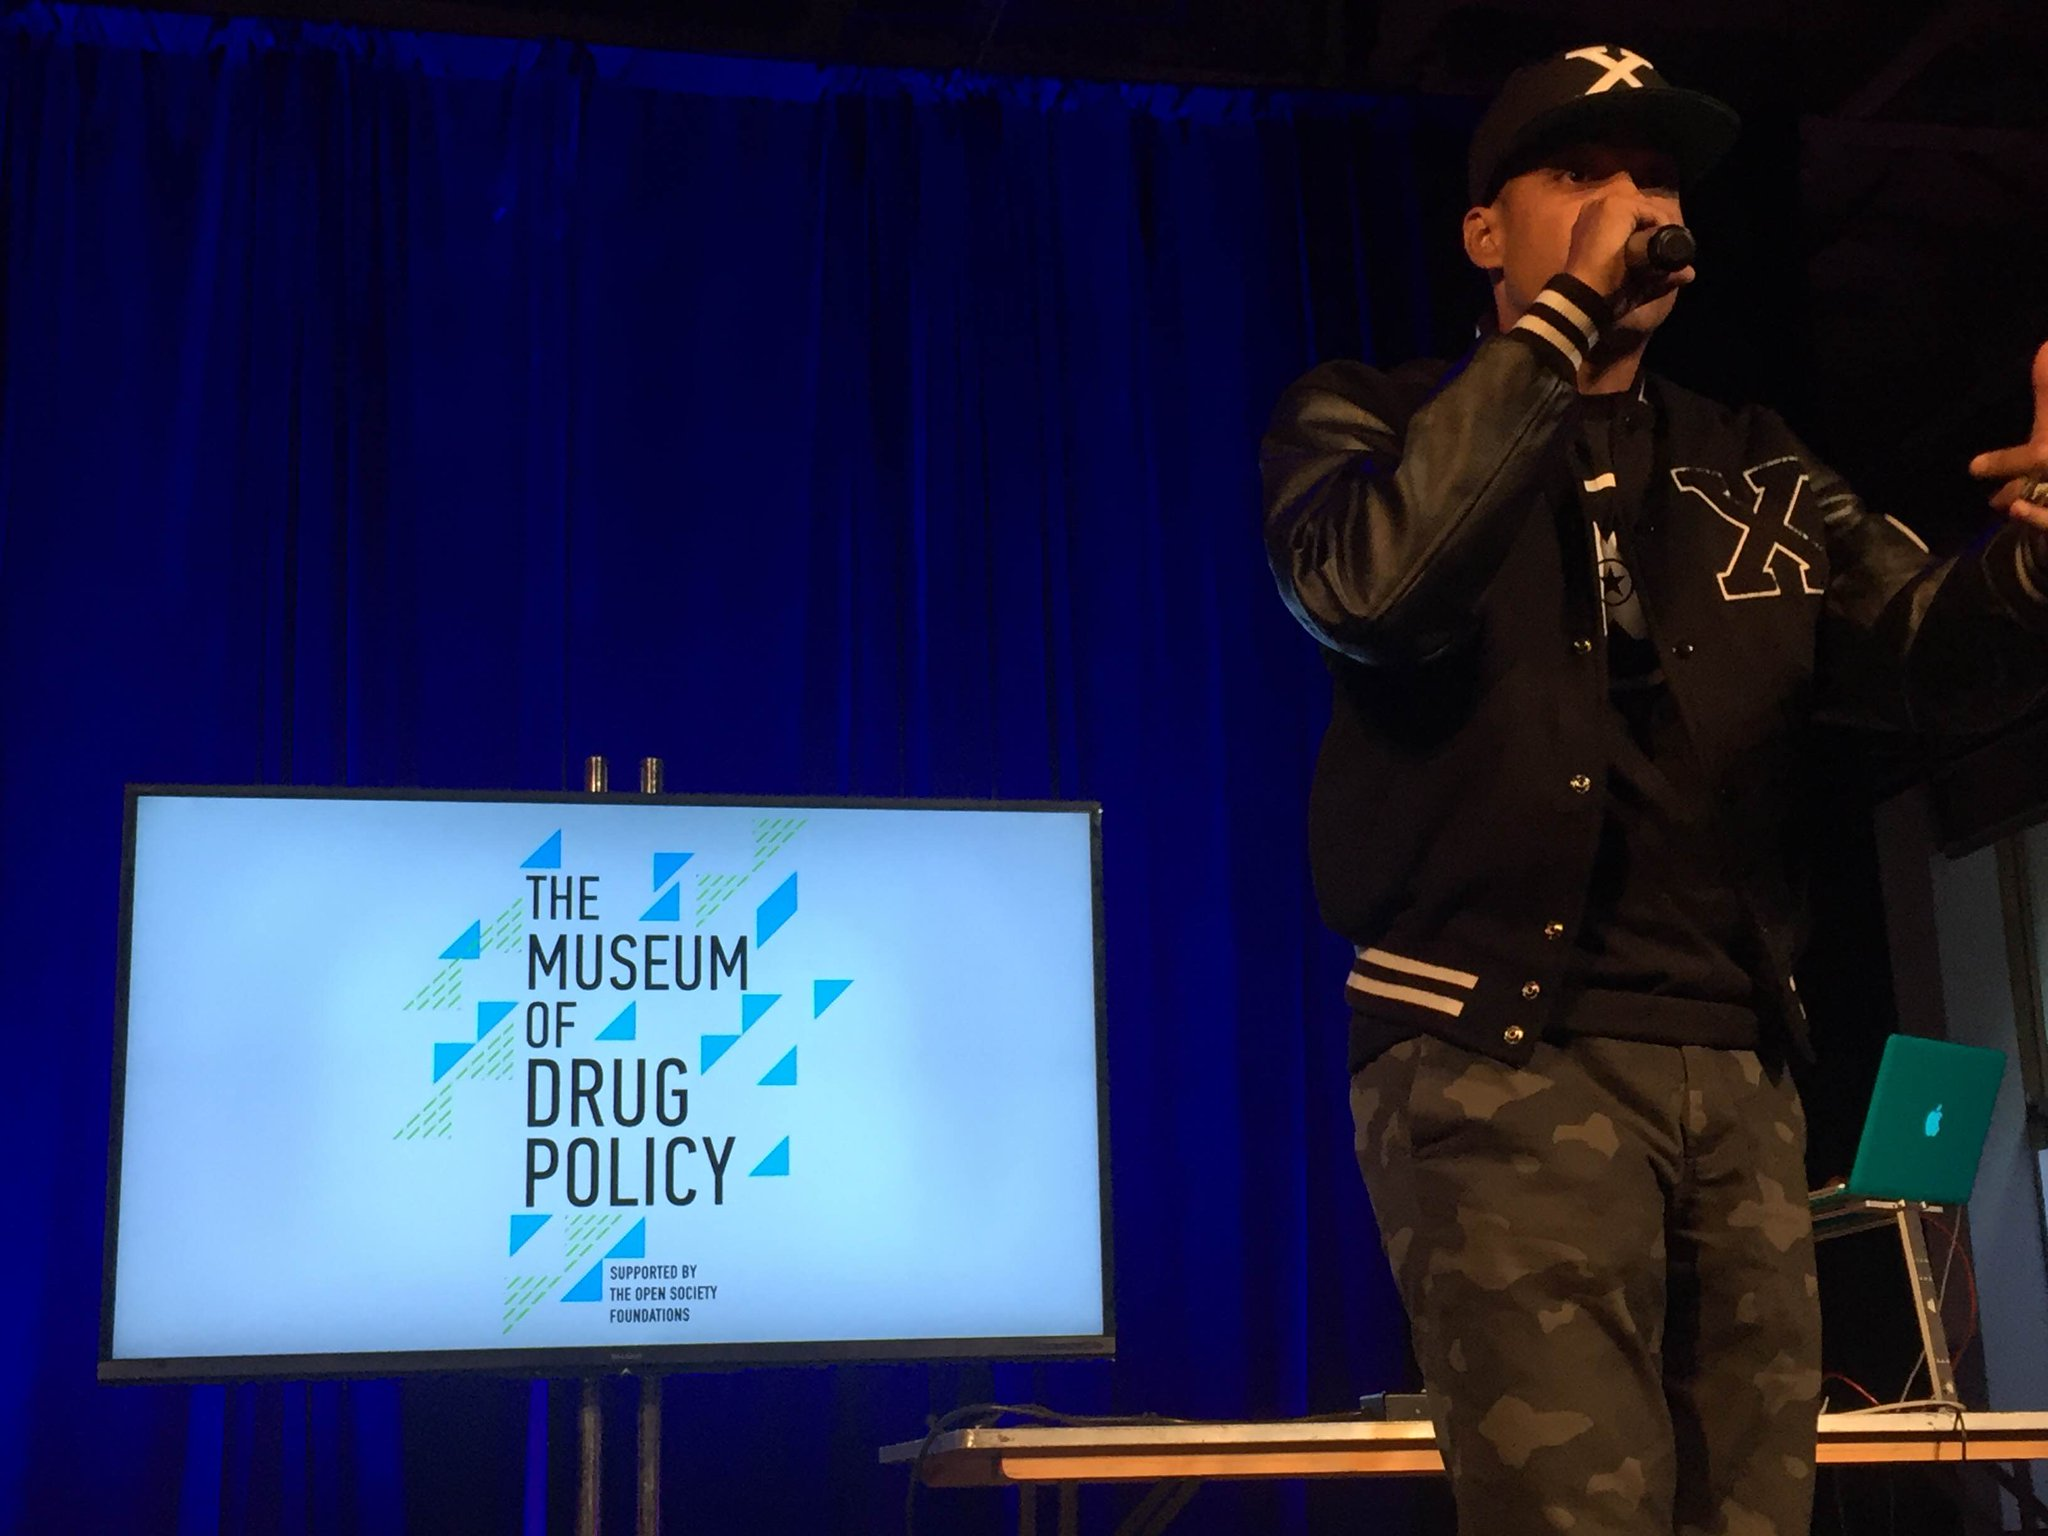 RT @Stop_The_Harm: @jasiri_x blesses the mic @ Museum of Drug Policy's closing session https://t.co/RktYoNBra0 #stoptheharm #ungass2016 htt…